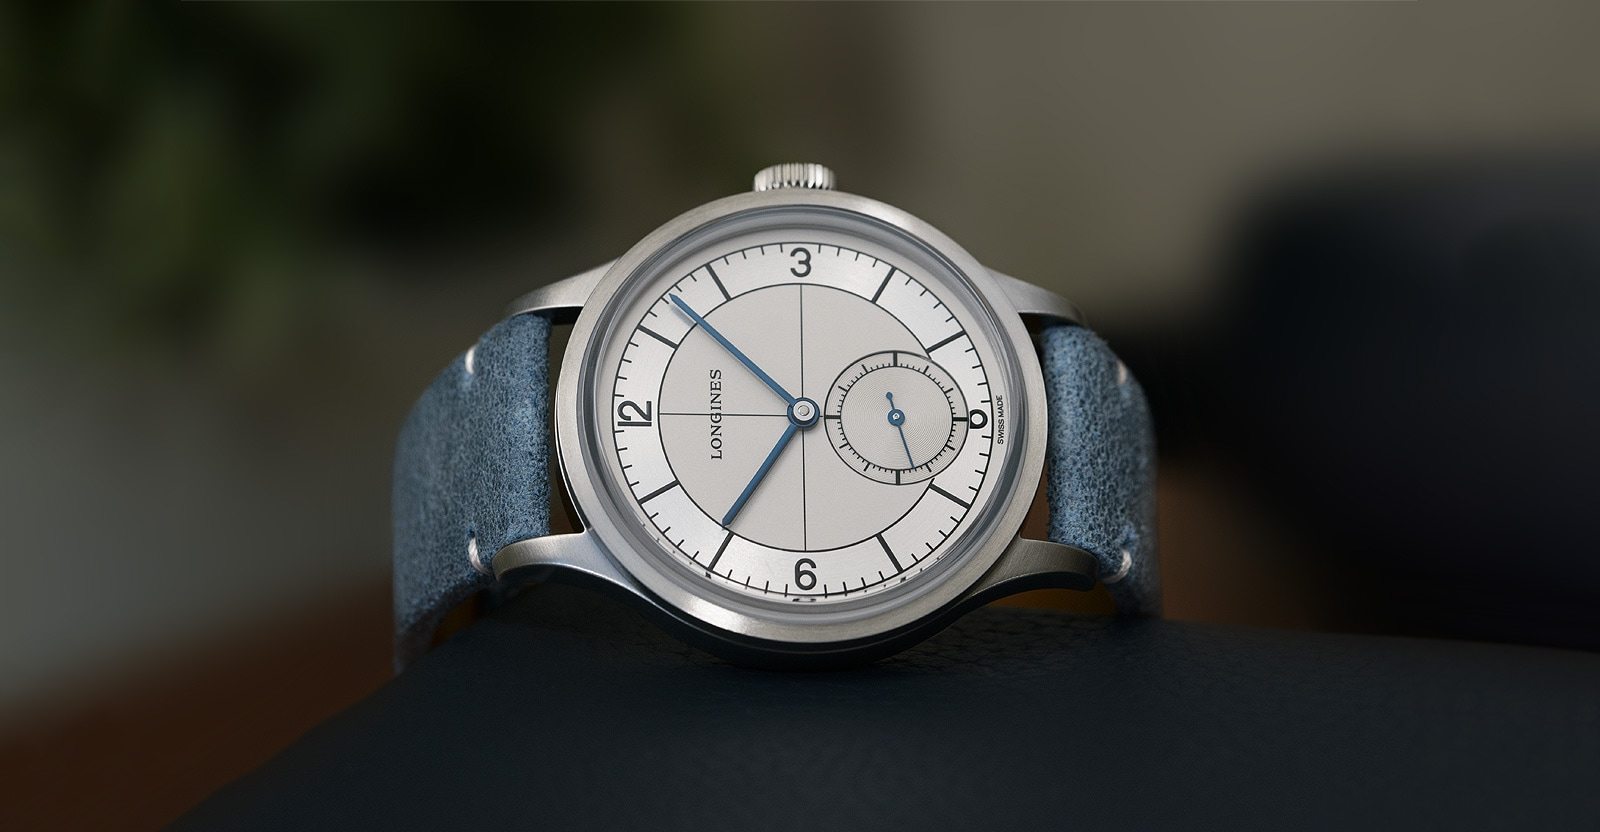 The Longines Heritage Classic